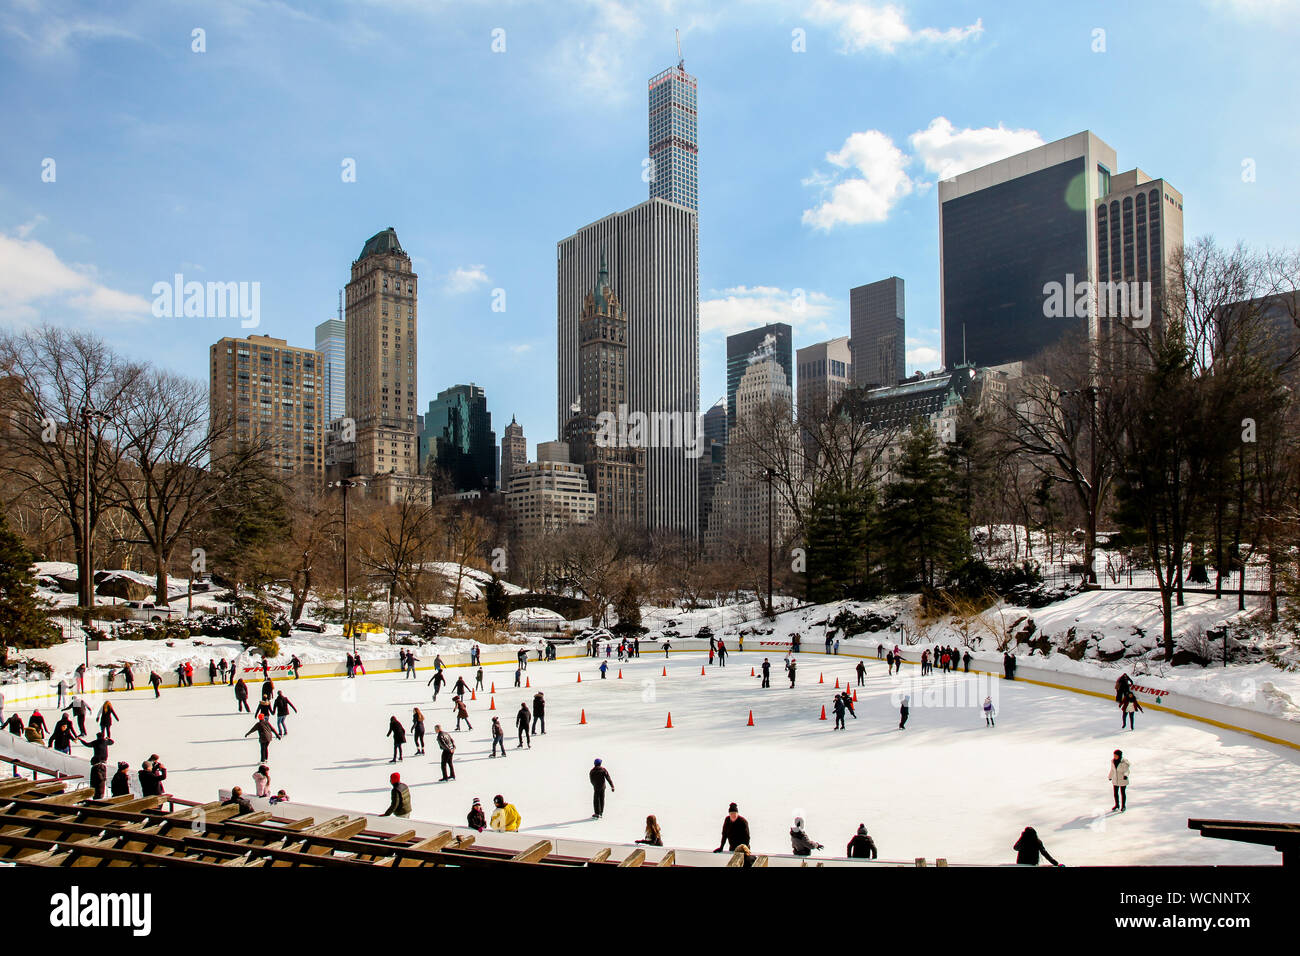 NEW YORK,NY, USA-FEBRUARY 18, 2015: Winter day scenery with New York city architecture skyline and ice rink in Central Park in New York City. Stock Photo